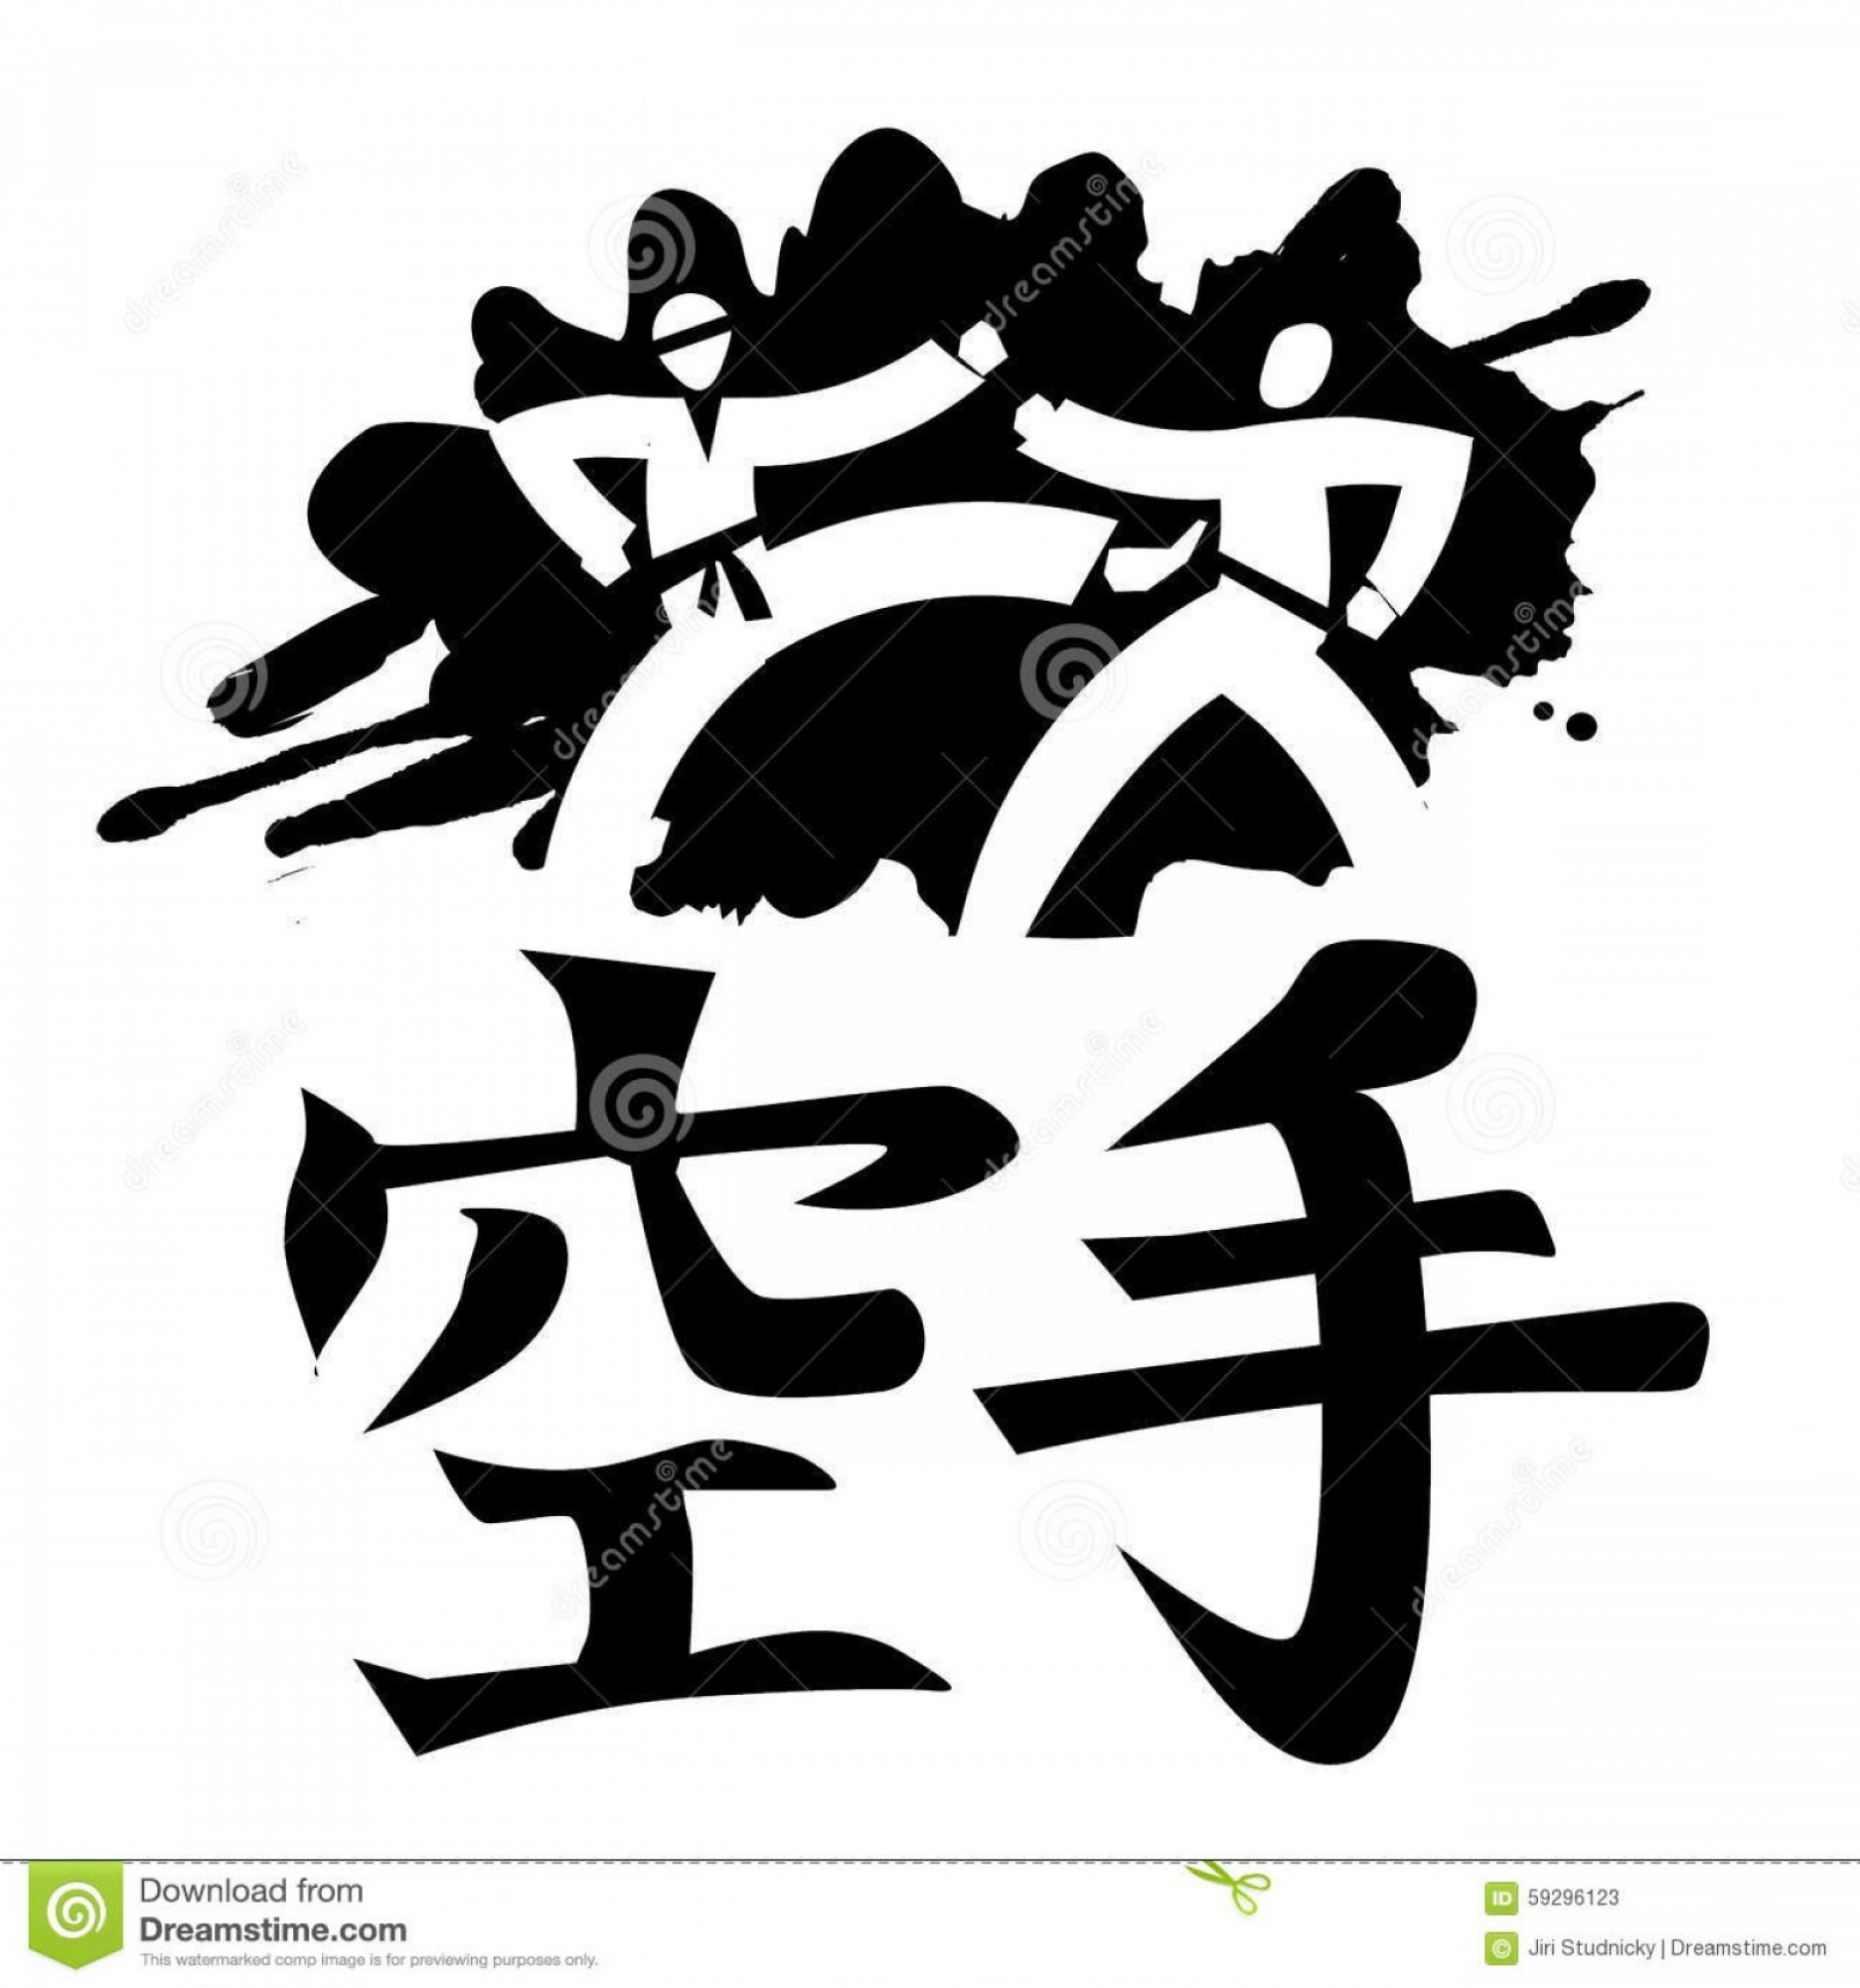 Airbrush Stencil Art Vector: Stock Illustration Japanese Calligraphy Karate Word White Background Vector Available Image